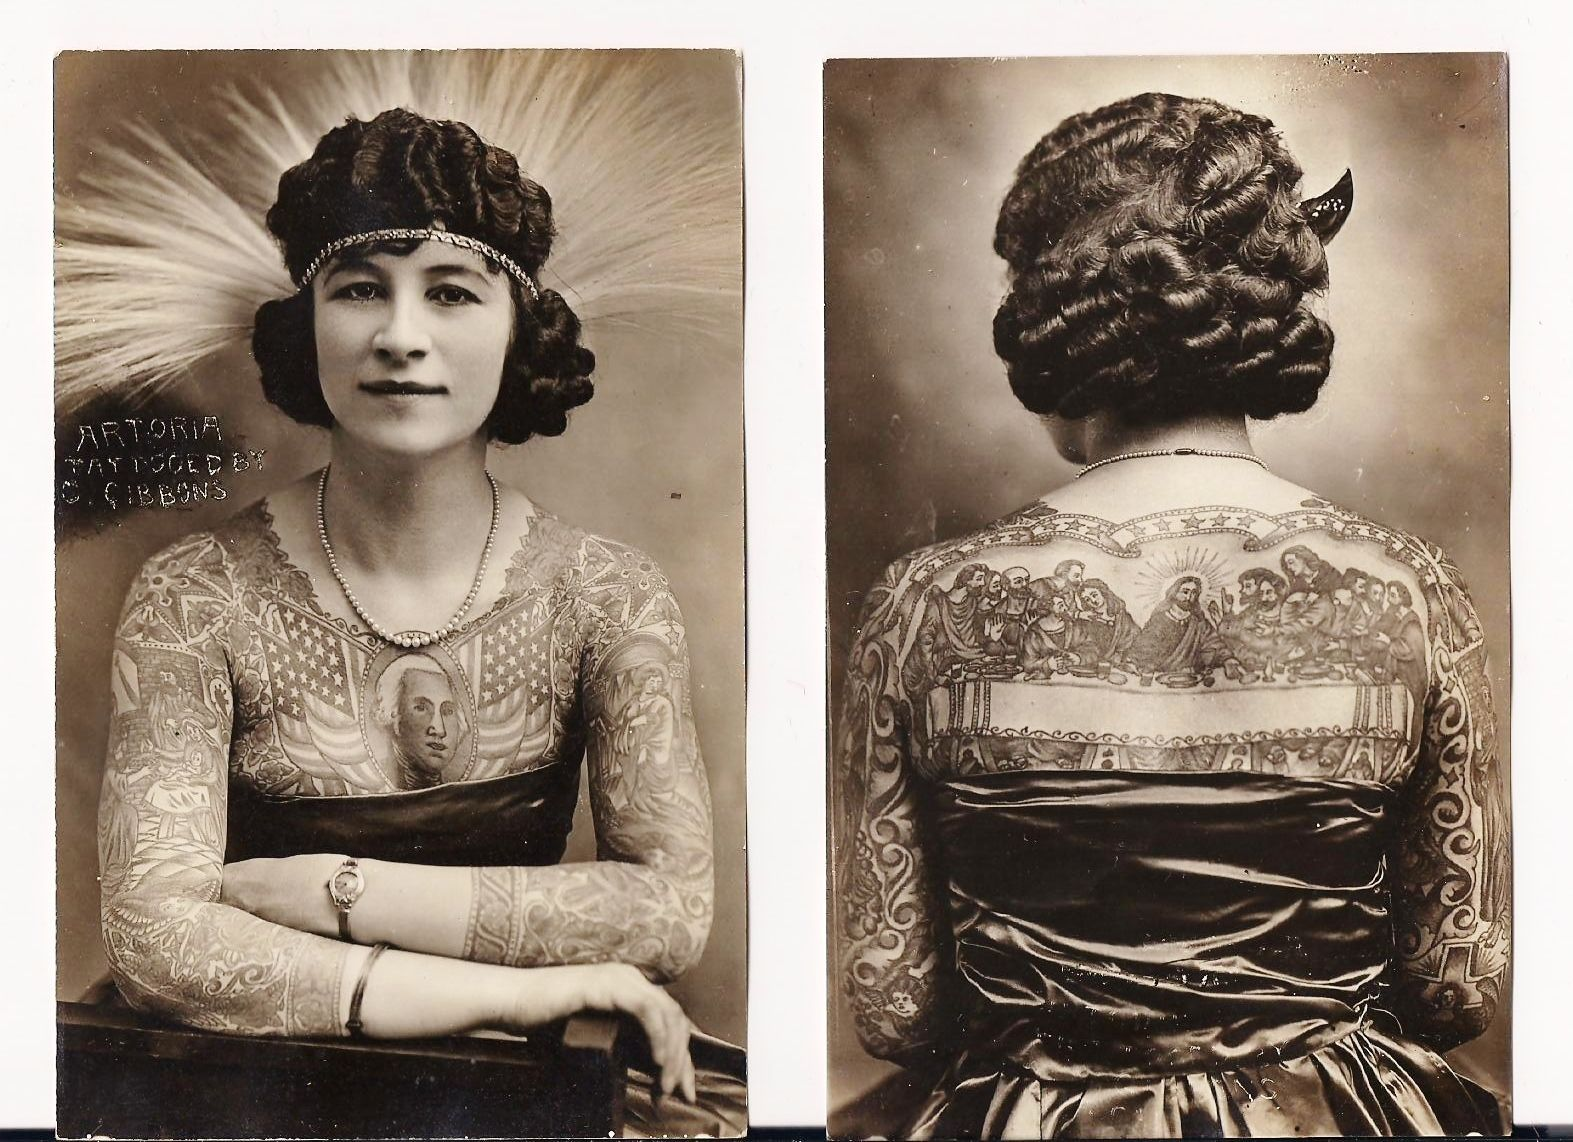 Artoria gibbons sideshow performer old postcards for Tattoo freak costume